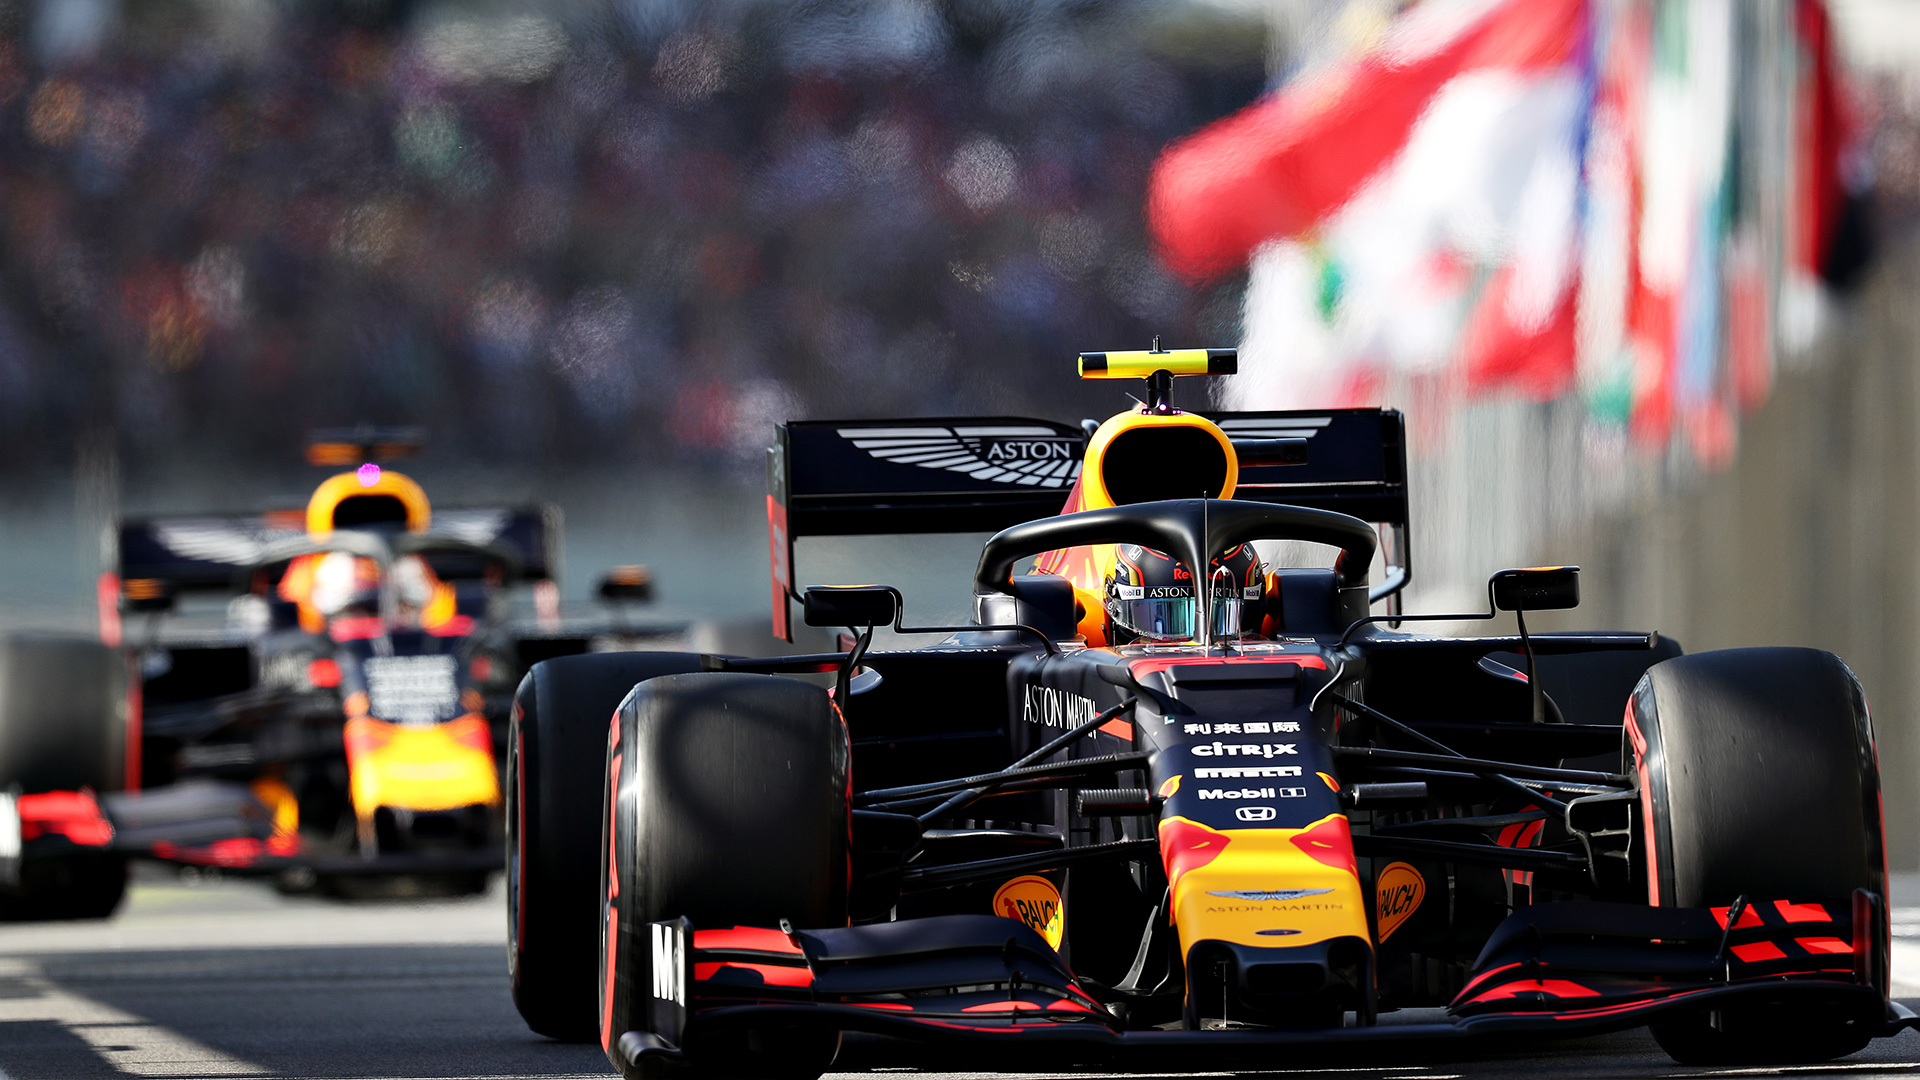 TECH TUESDAY: Why Red Bull could hit the ground running in 2020 - Formula 1